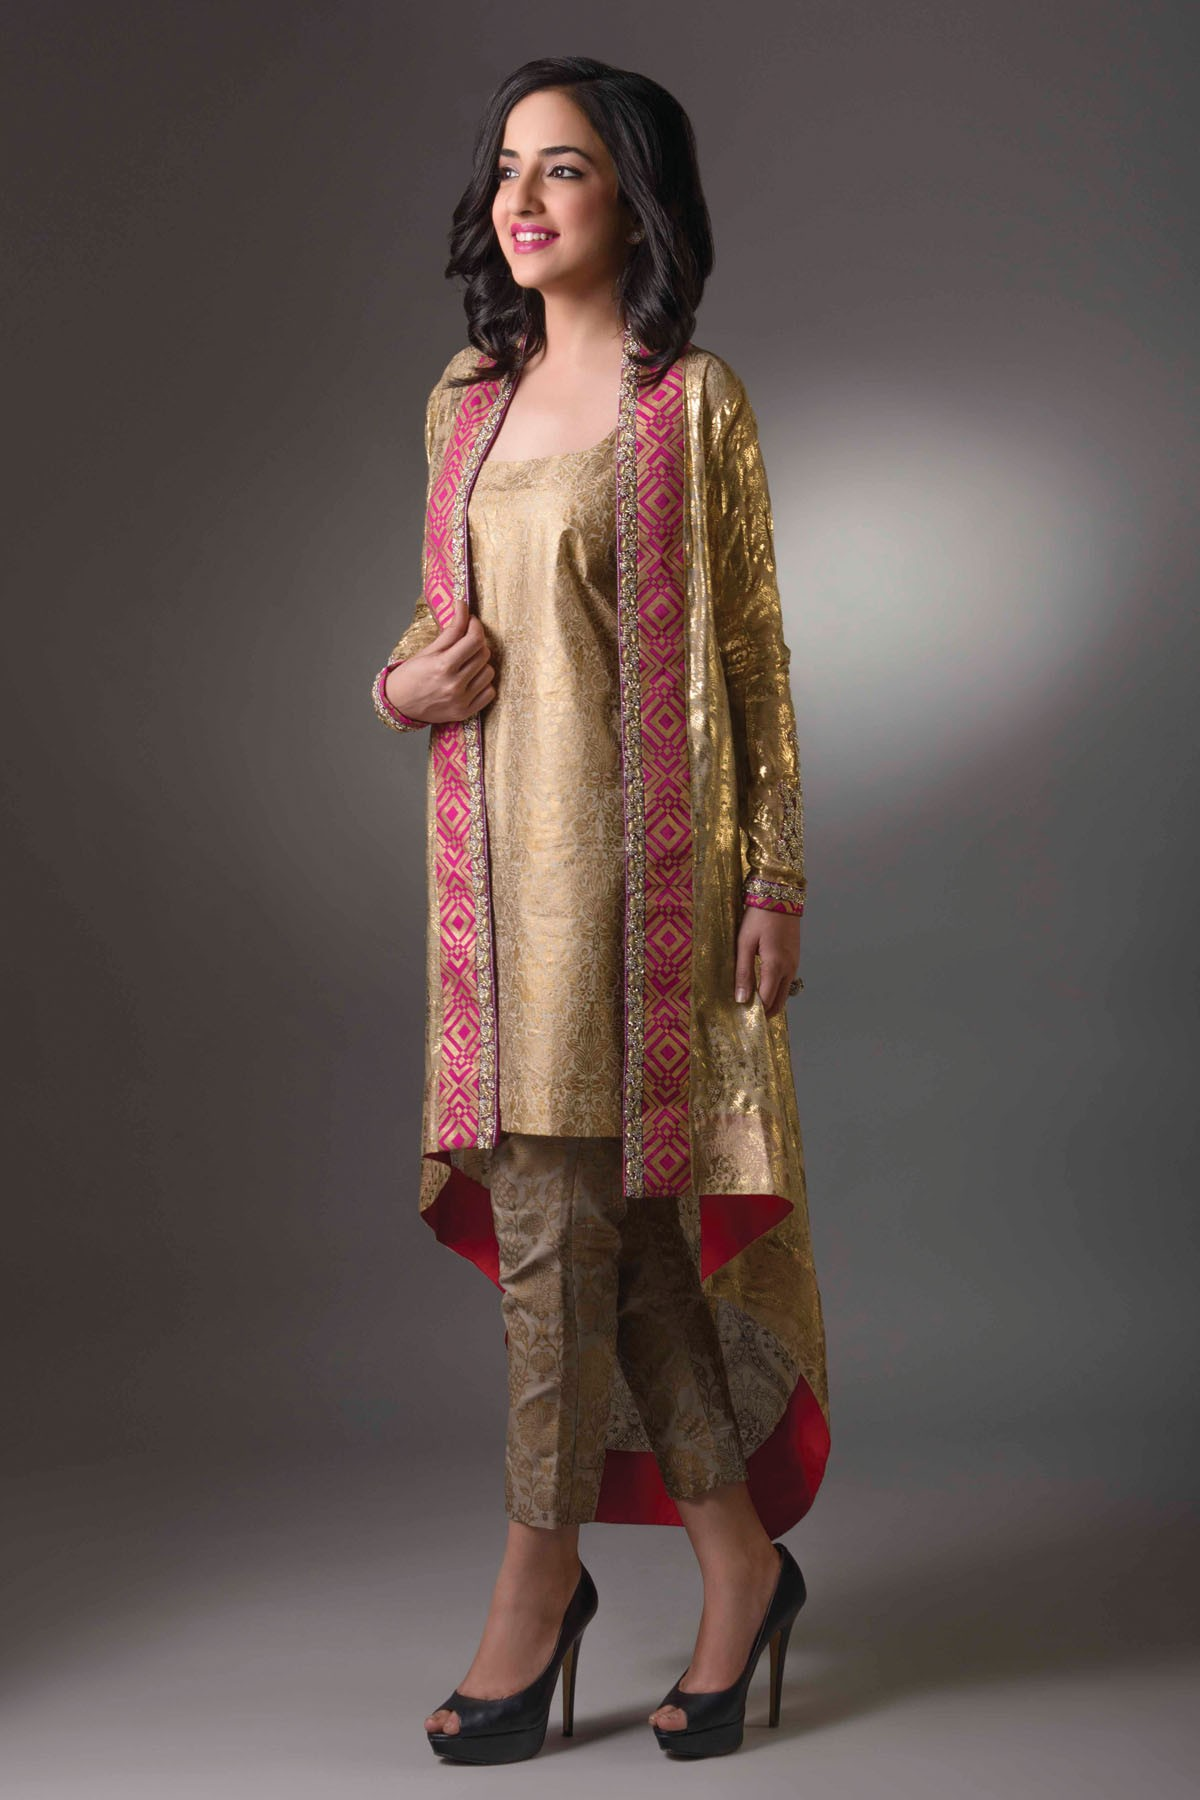 beautiful pakistani wedding dresses best dresses for wedding best wedding dress for girls